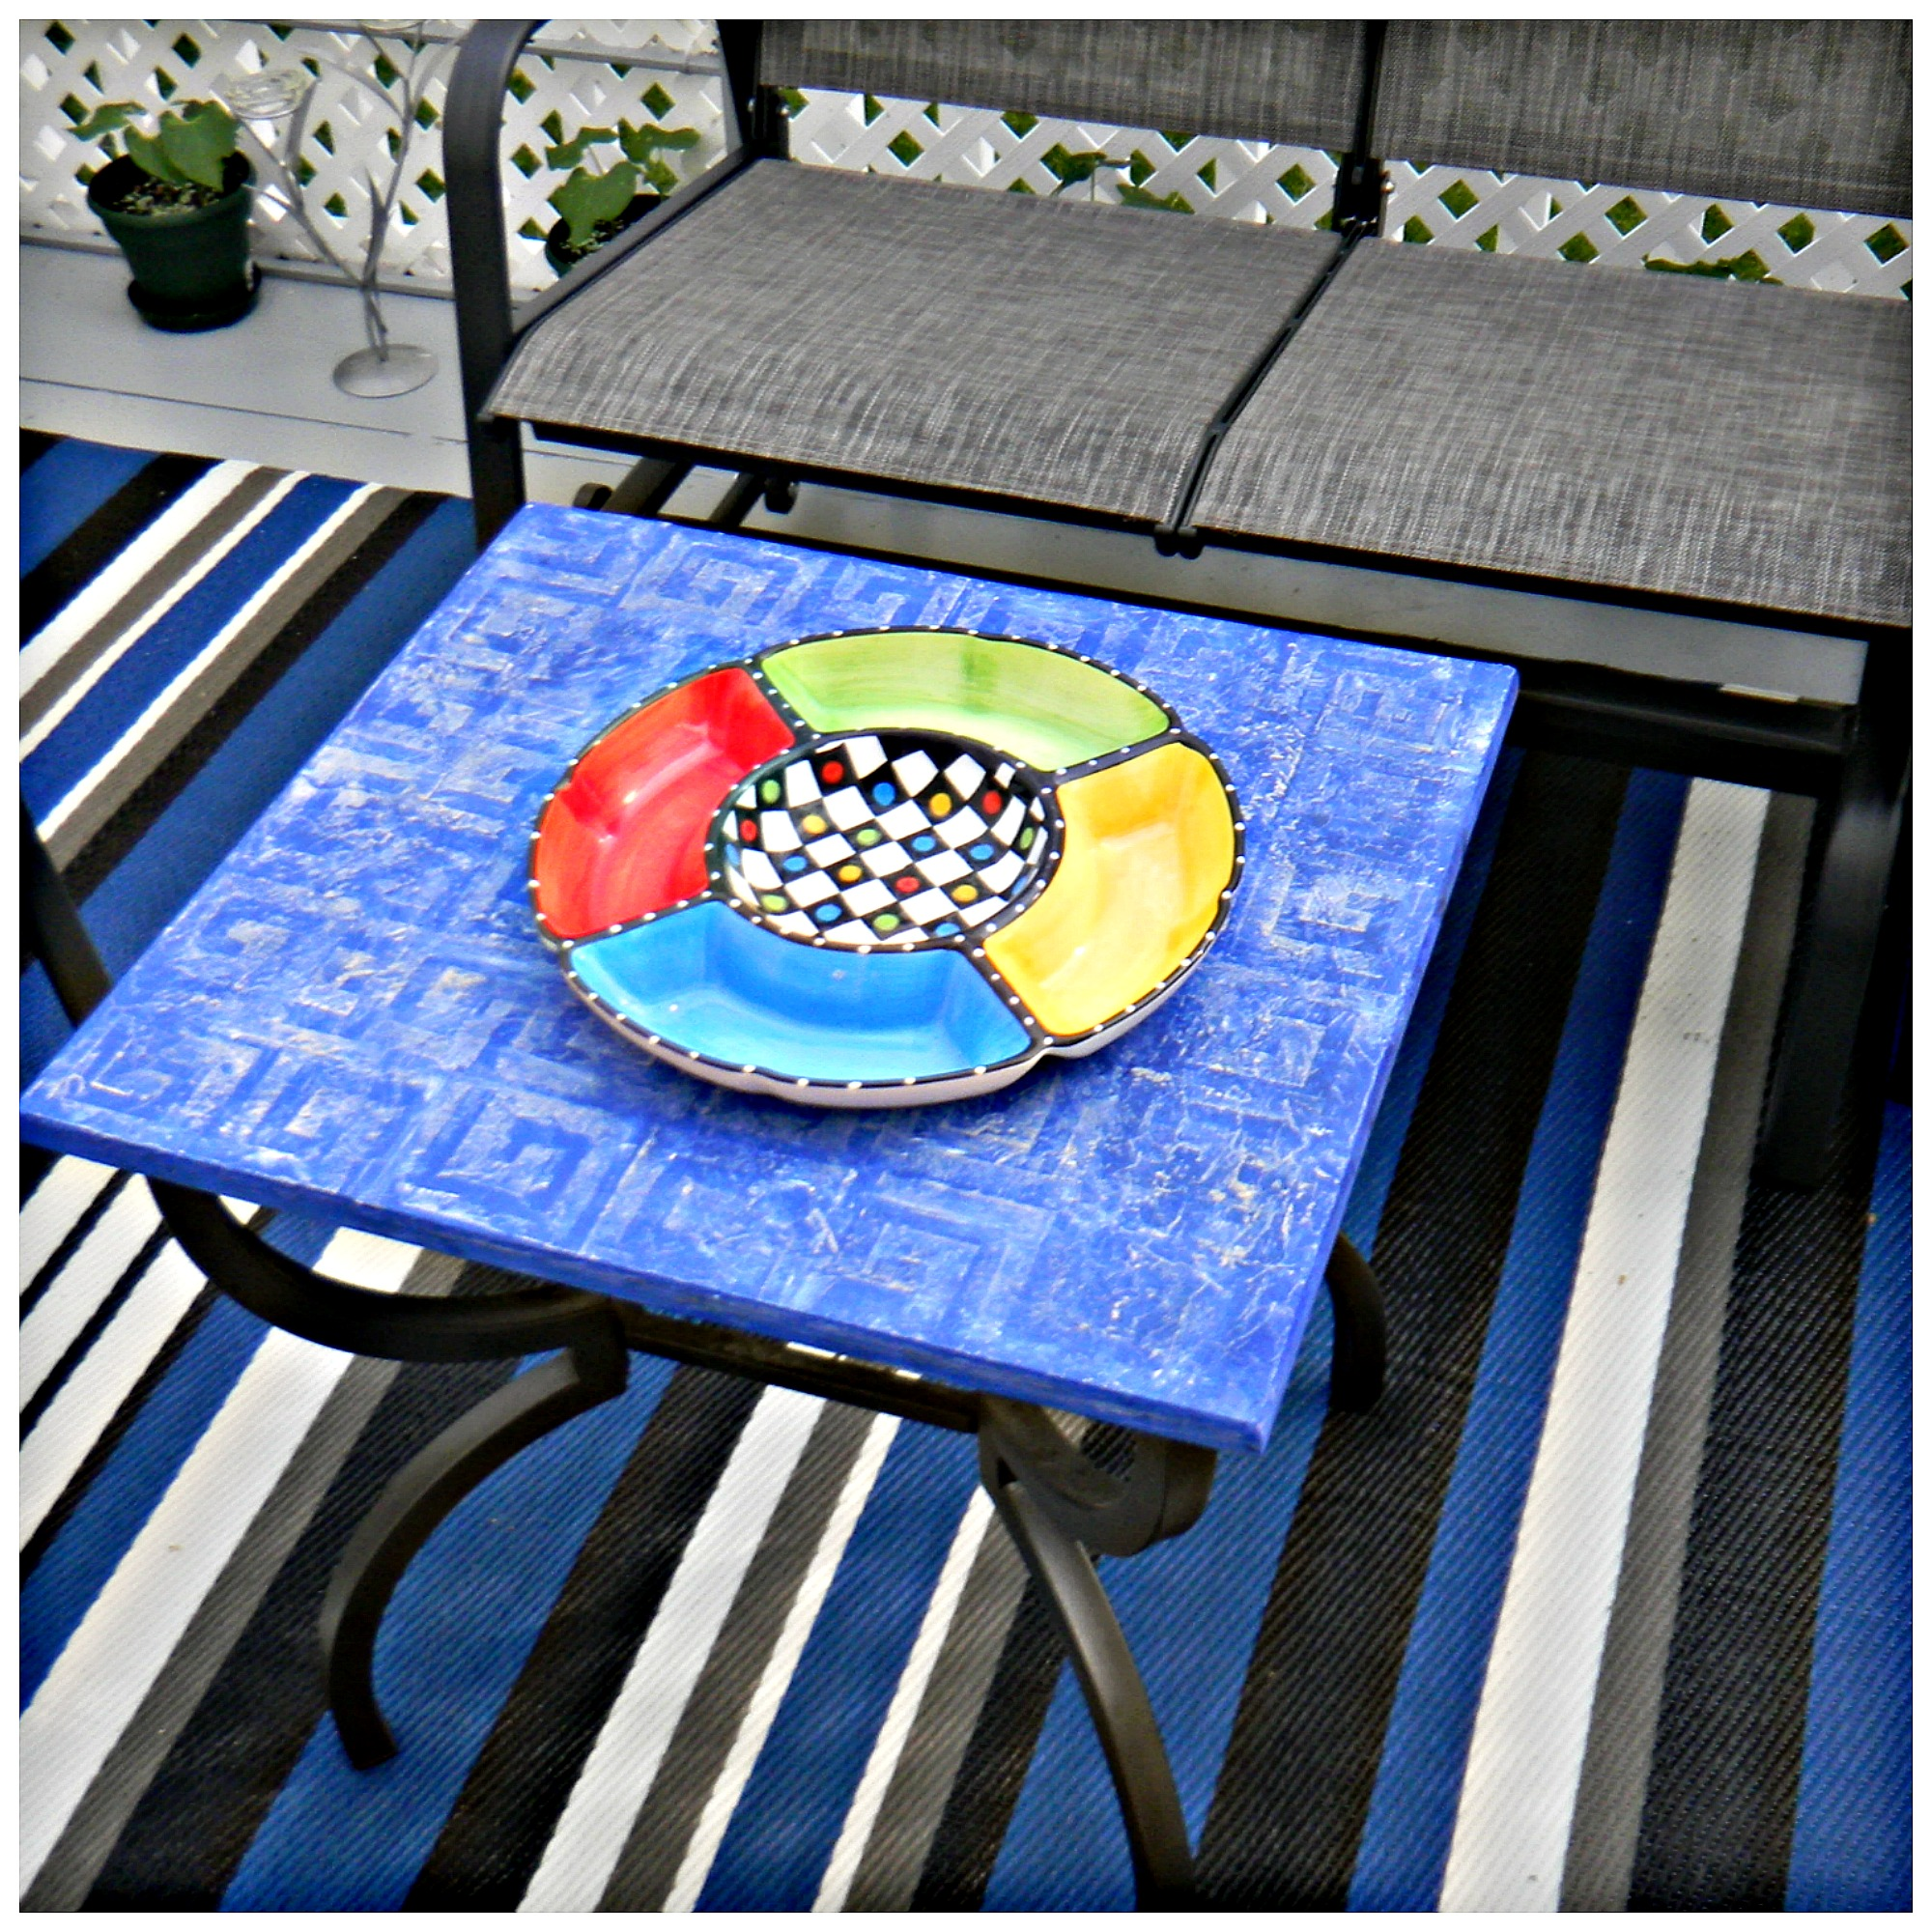 restored painted outdoor coffee table 8 DIY Patio Accents #trashtotreasure #patio #diy #yard #garden #up-cycle #re-purpose #patio_table #plant_stand #bird_bath #herb_garden #wineglass #martiniglass #candles #art